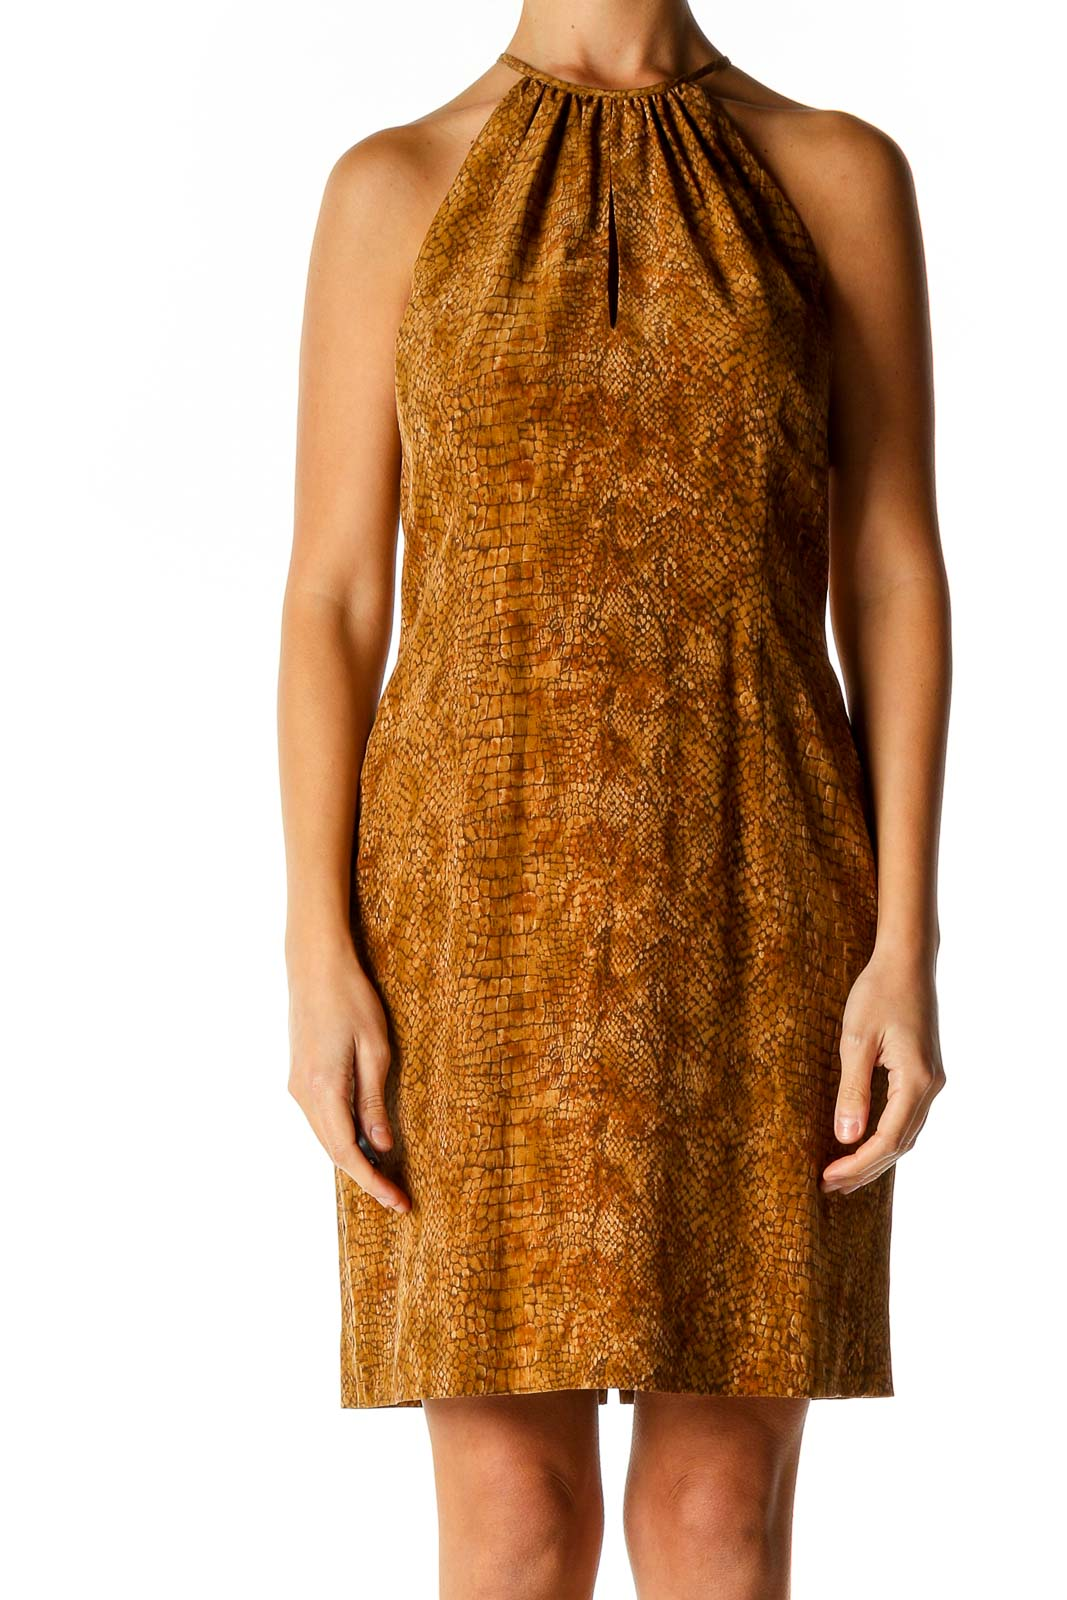 Brown Animal Print Cocktail A-Line Dress Front